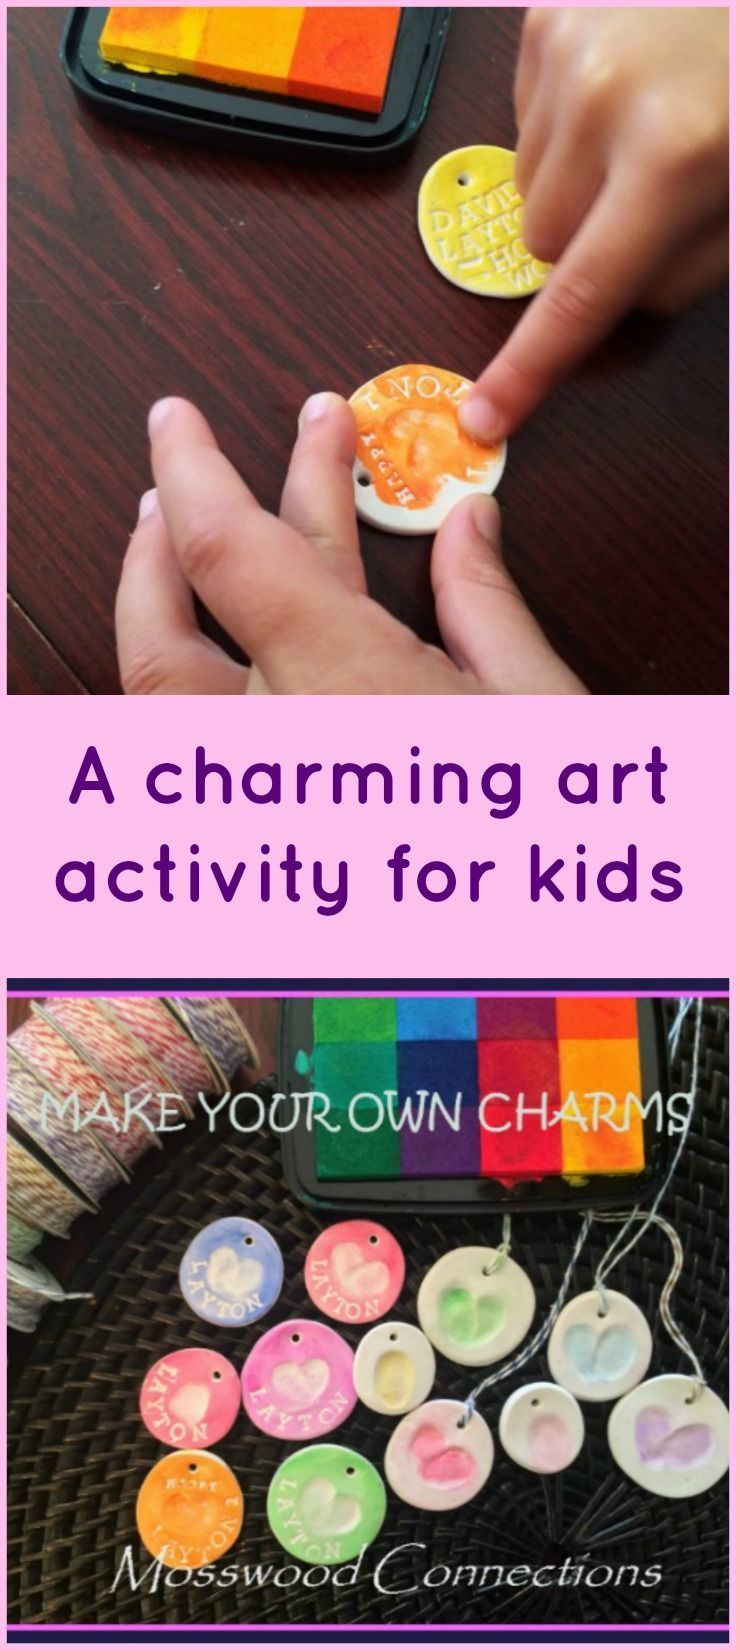 fingerprint charms jewelry art activity for kids - Free Kids Pictures